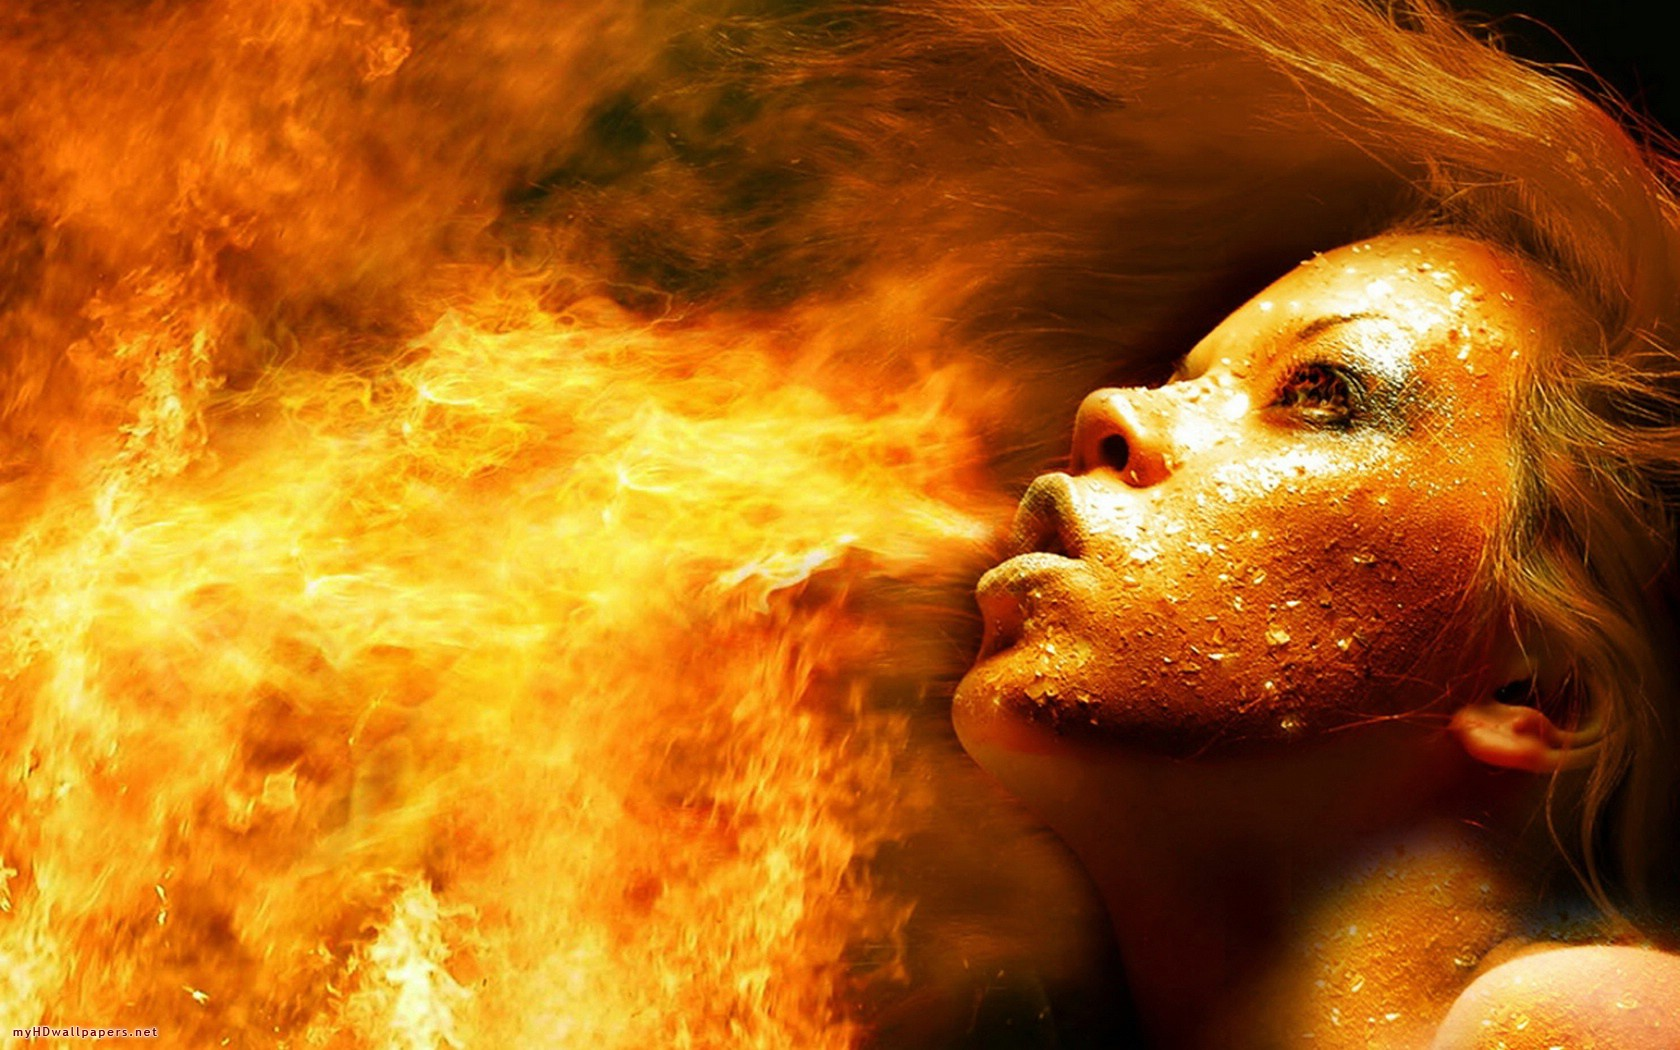 Fire girl   Desktop Wallpaper HD Wallpapers Download and New 3D 1680x1050